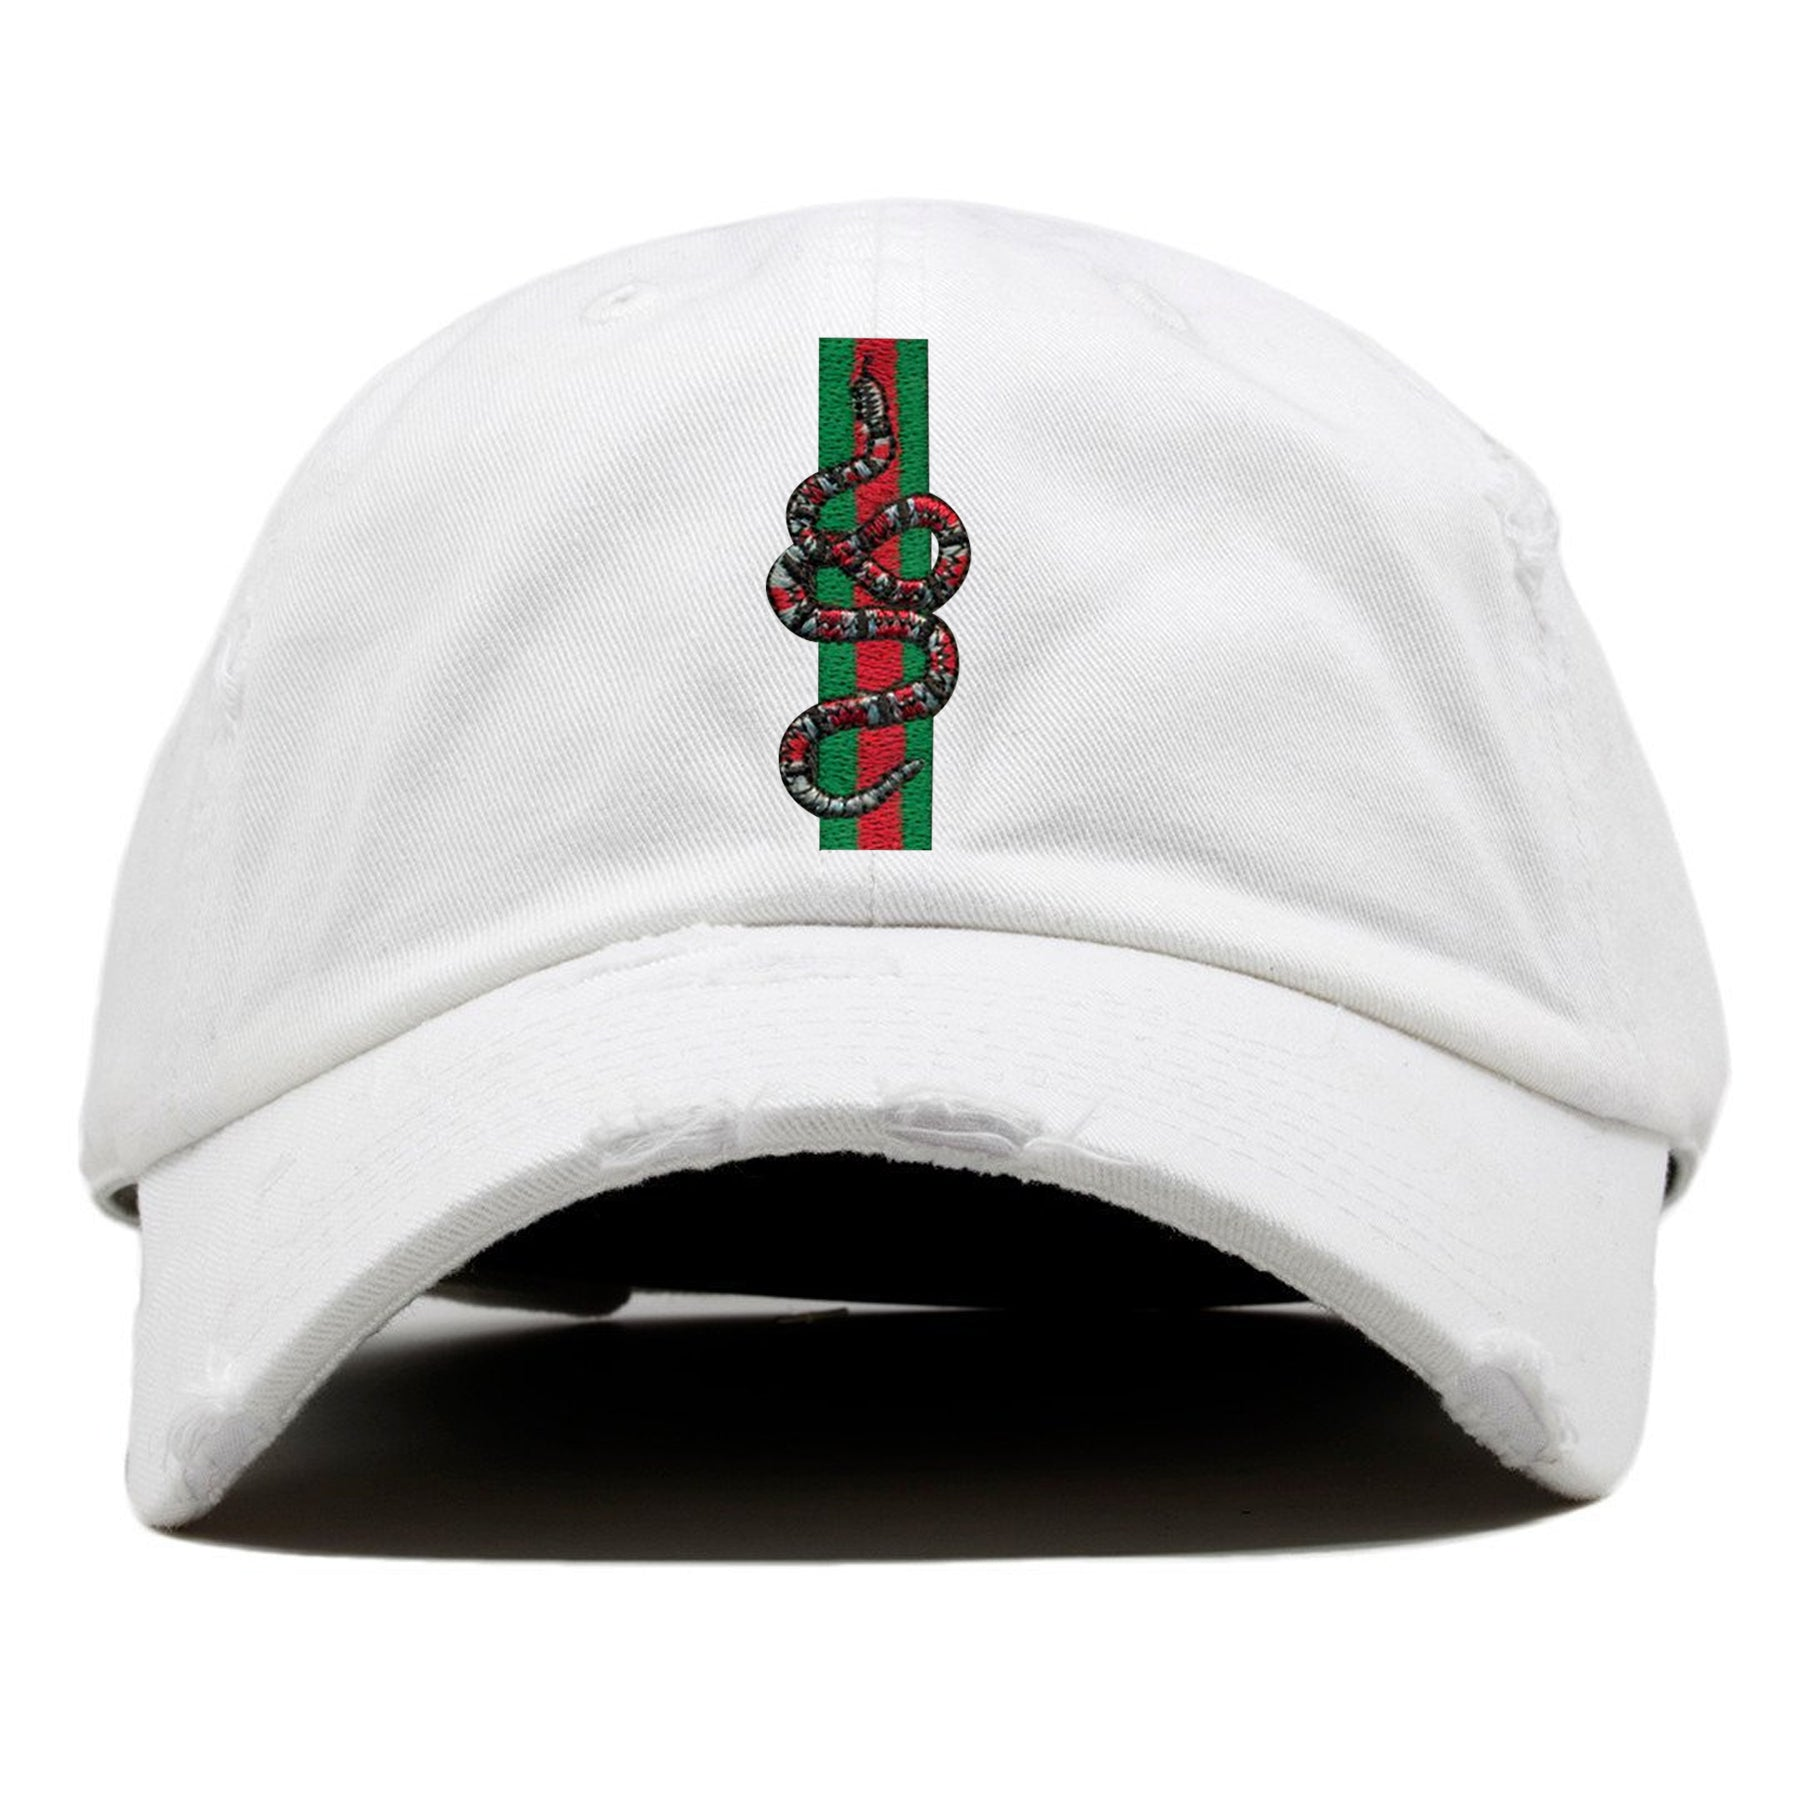 on the front of the gucci italian fashion snake dad hat are 3 stripes  embroidered in 4a7c19c6aad